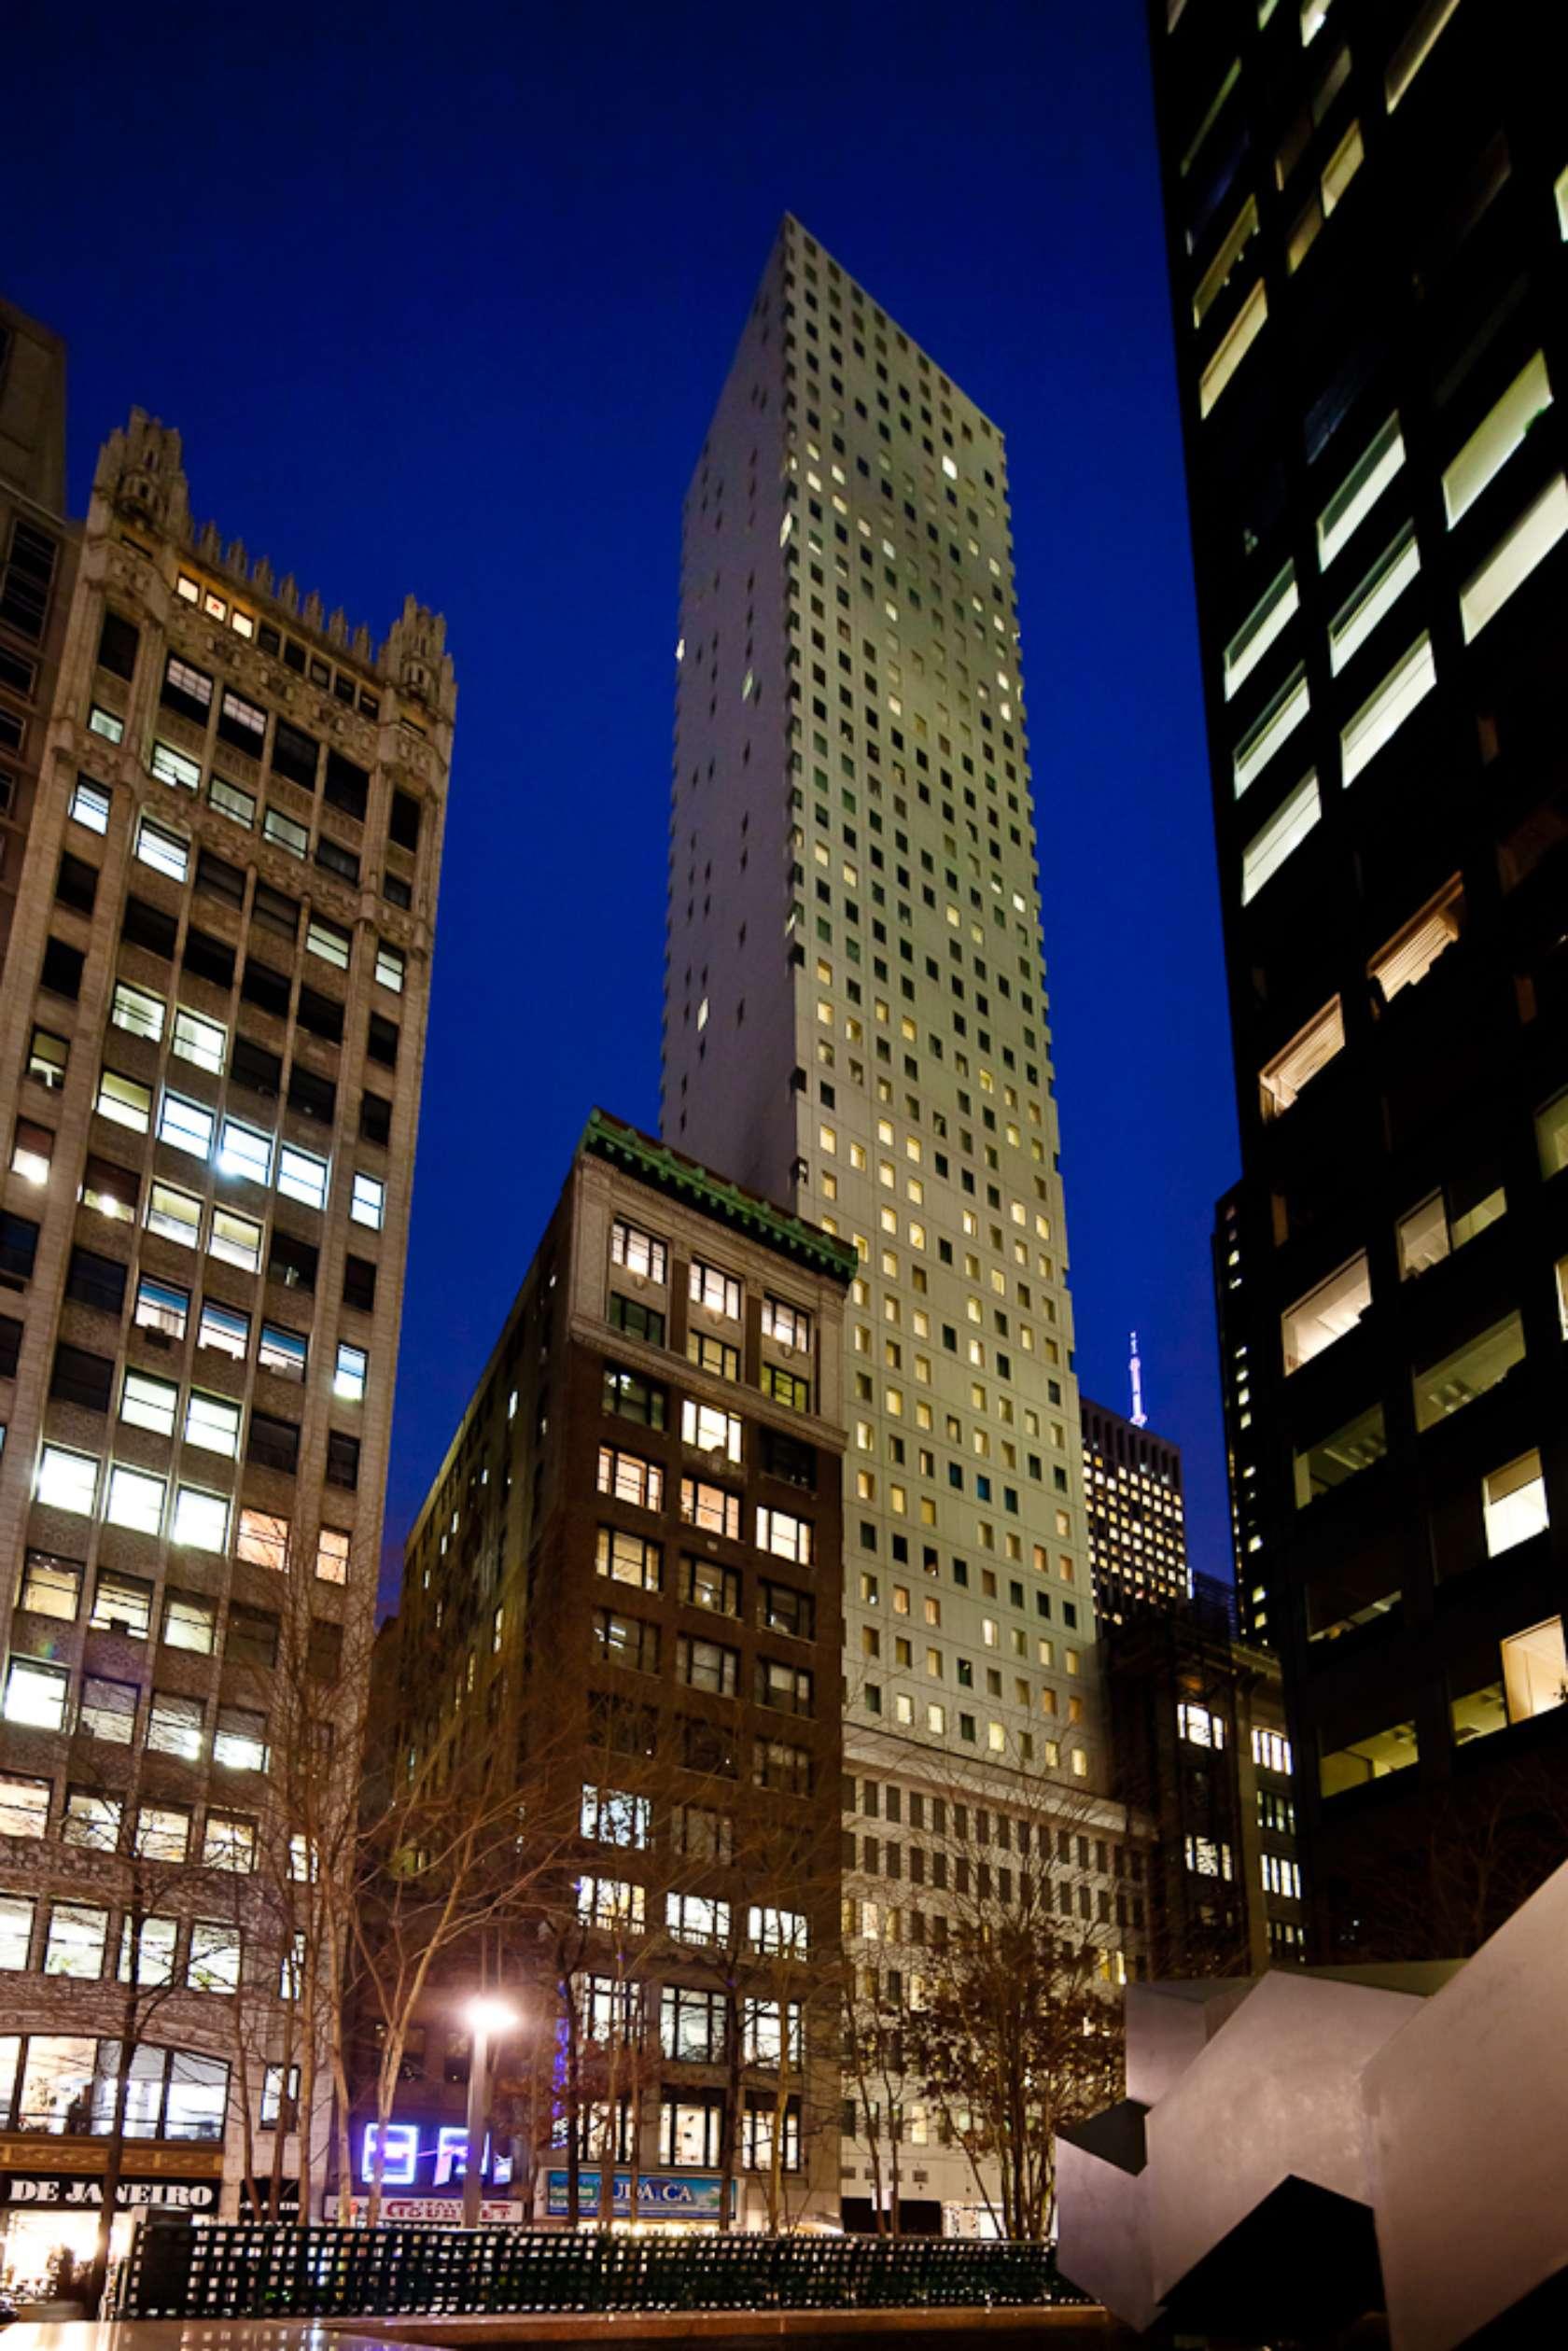 Cassa nyc 70 west 45th street clinton condos for sale for Nyc condo for sale